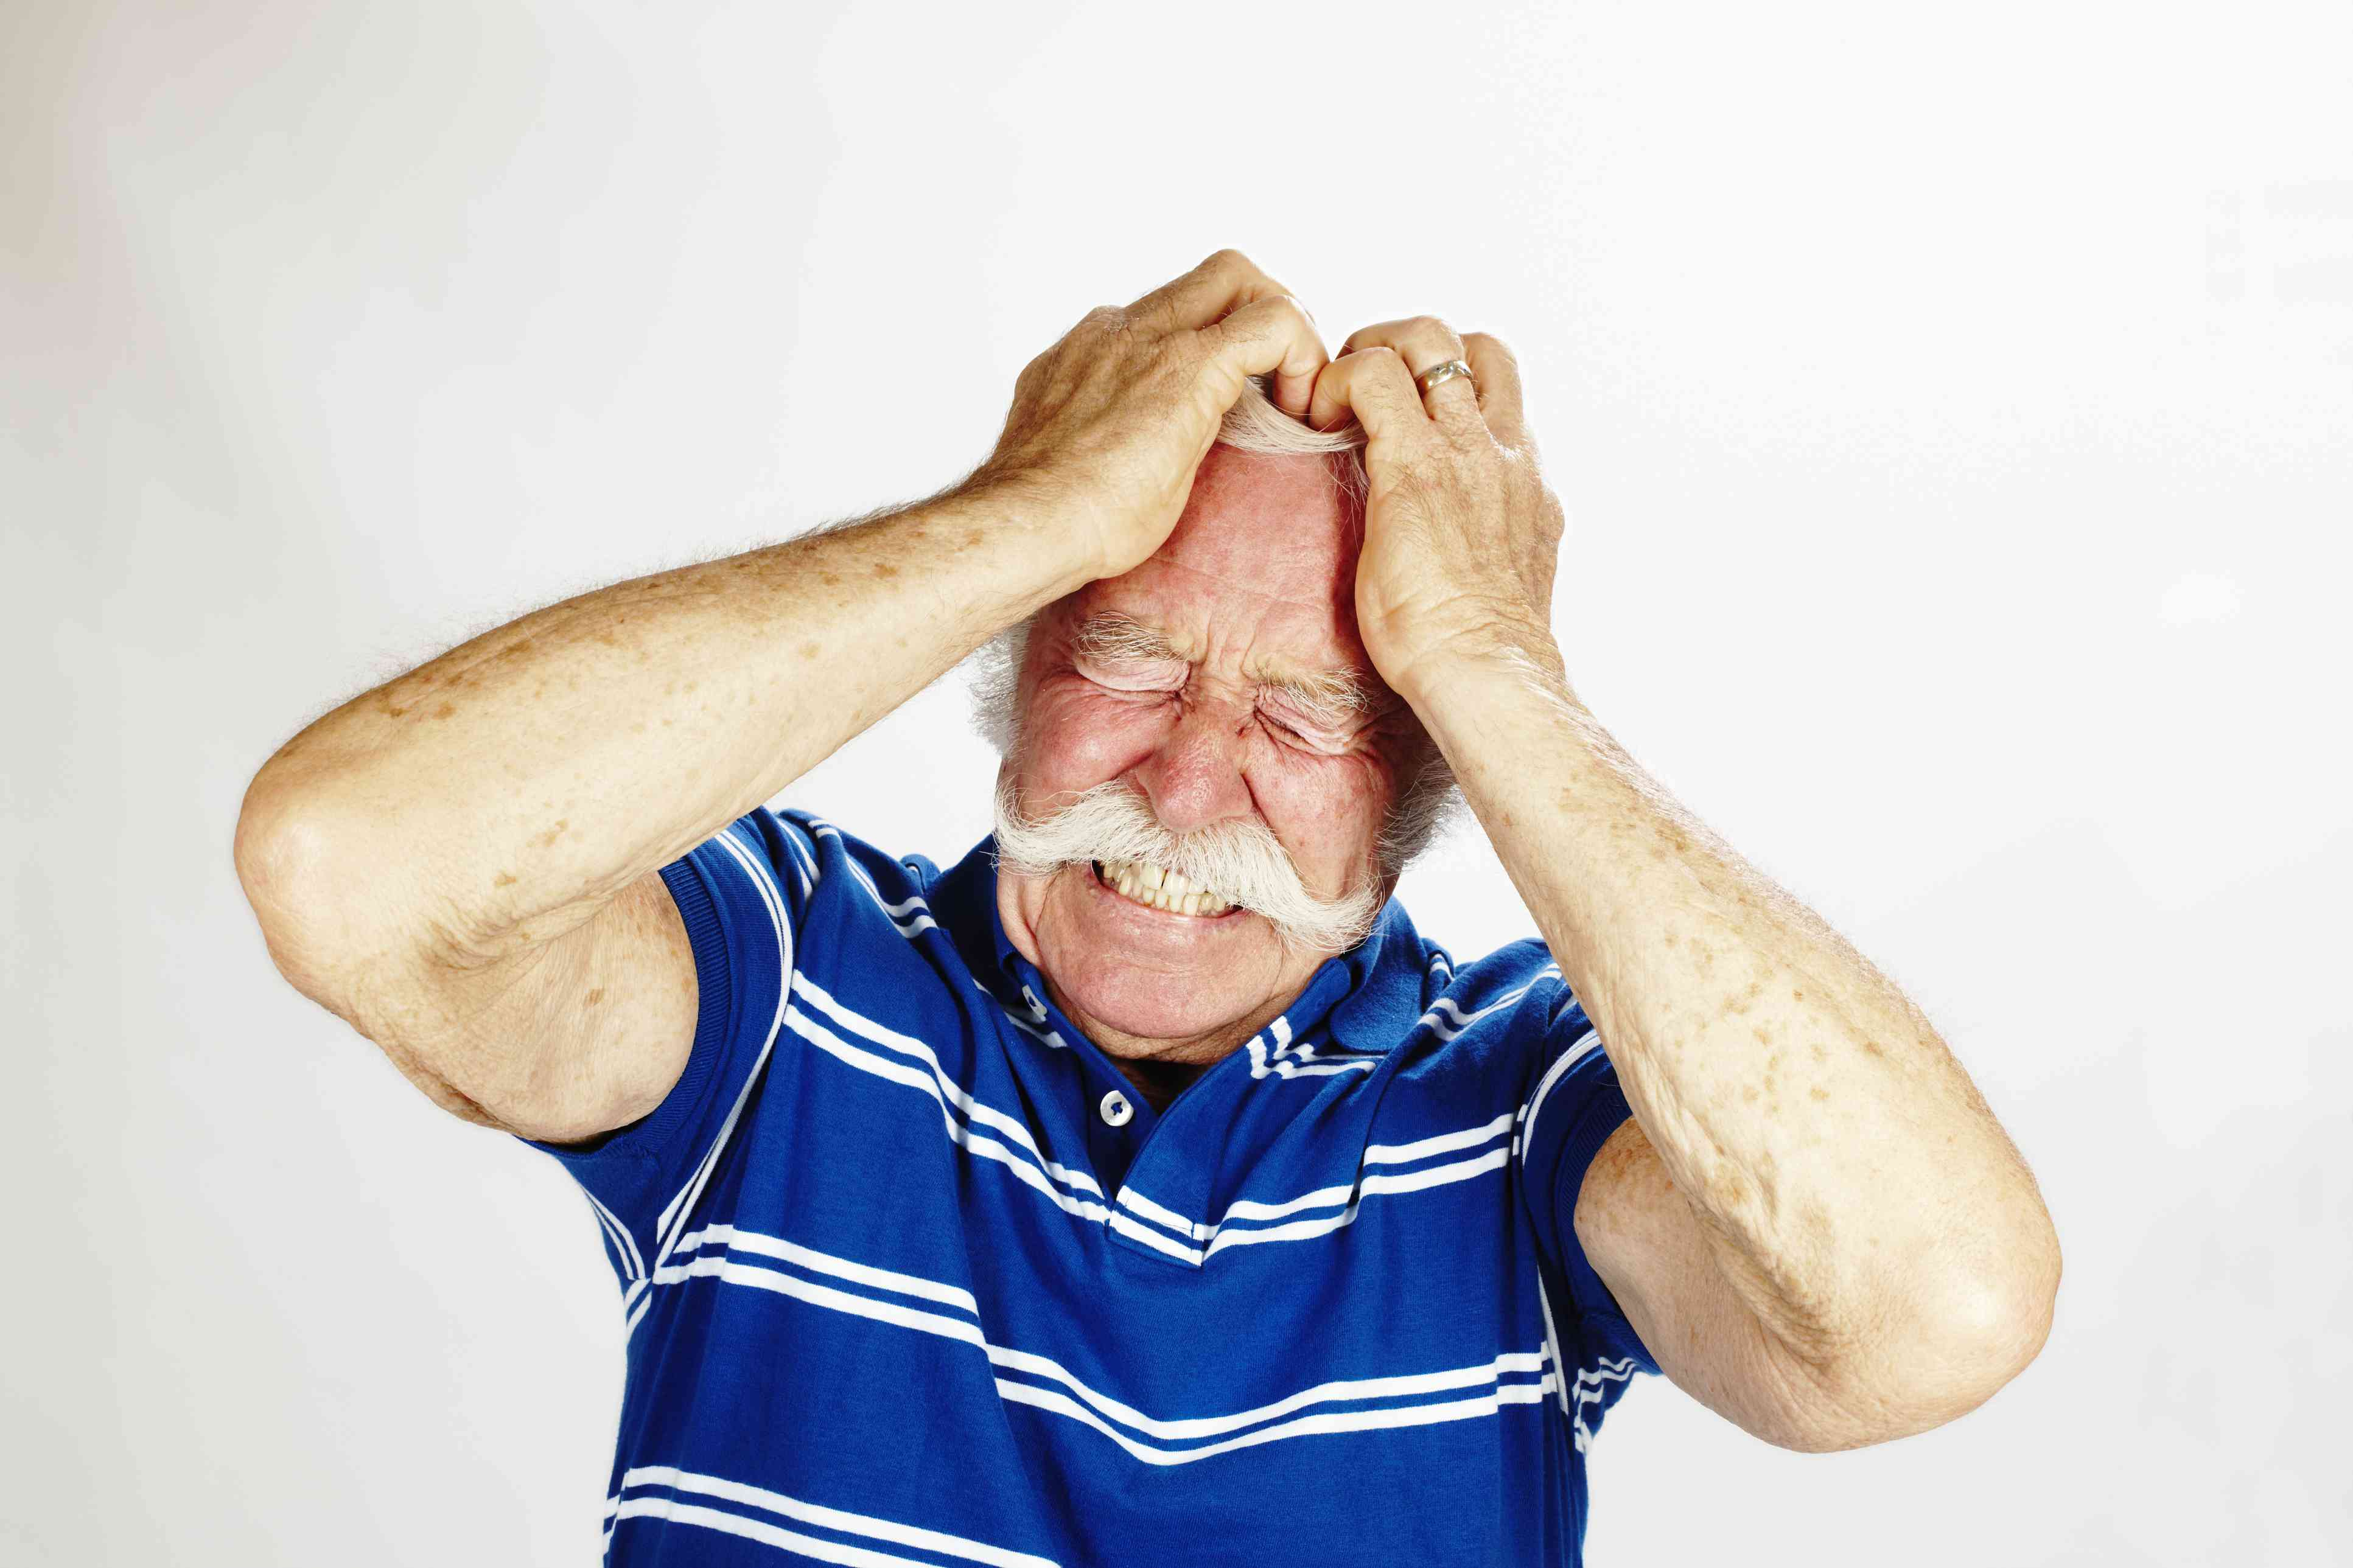 Older man standing against a white background holding his hands on his head while wearing a pained expression